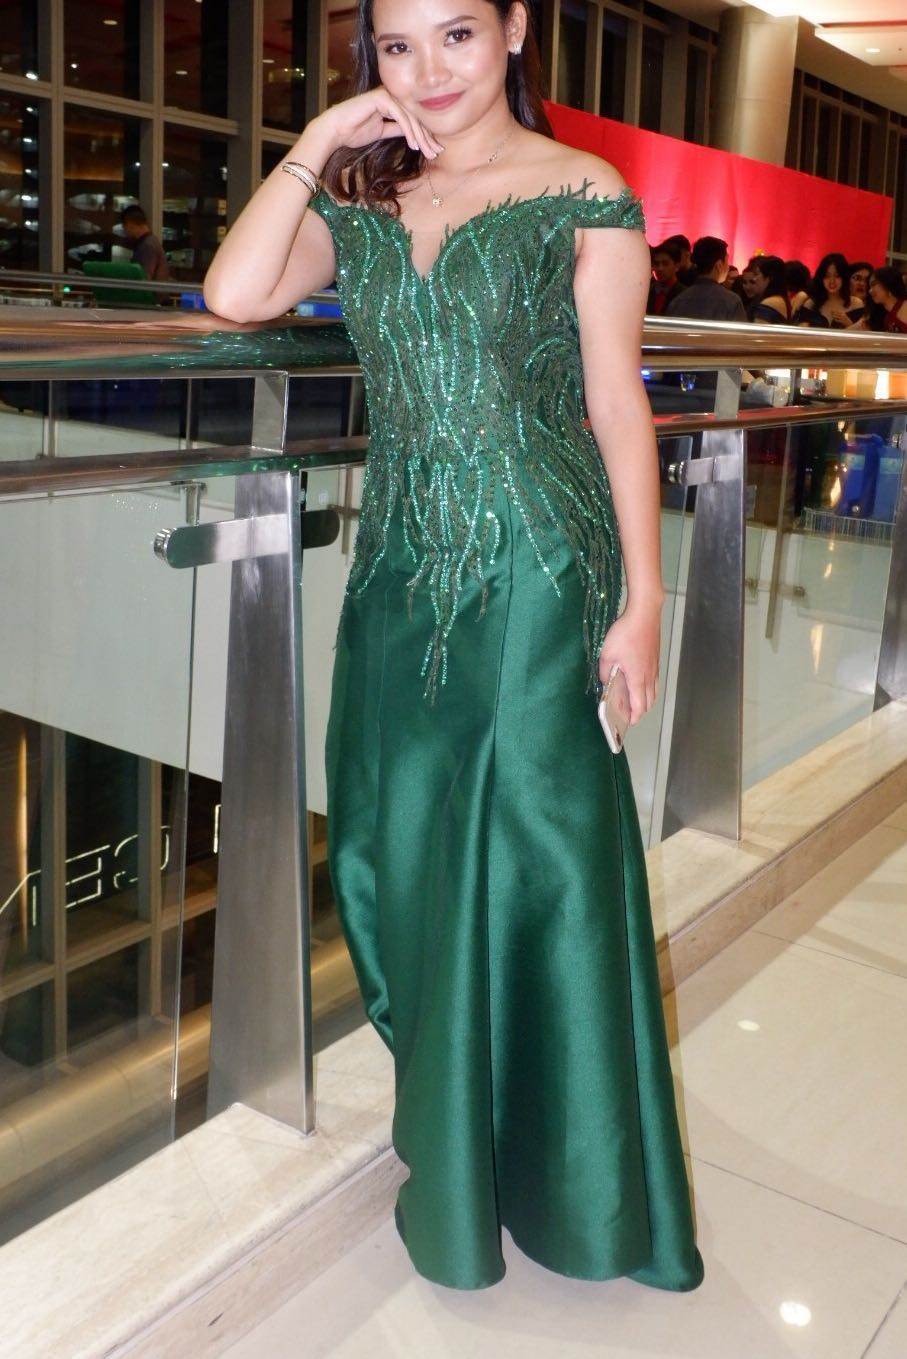 ab3074ddf9d3 Emerald green off shoulder gown Formal dress - Paolo Blanco (FOR ...